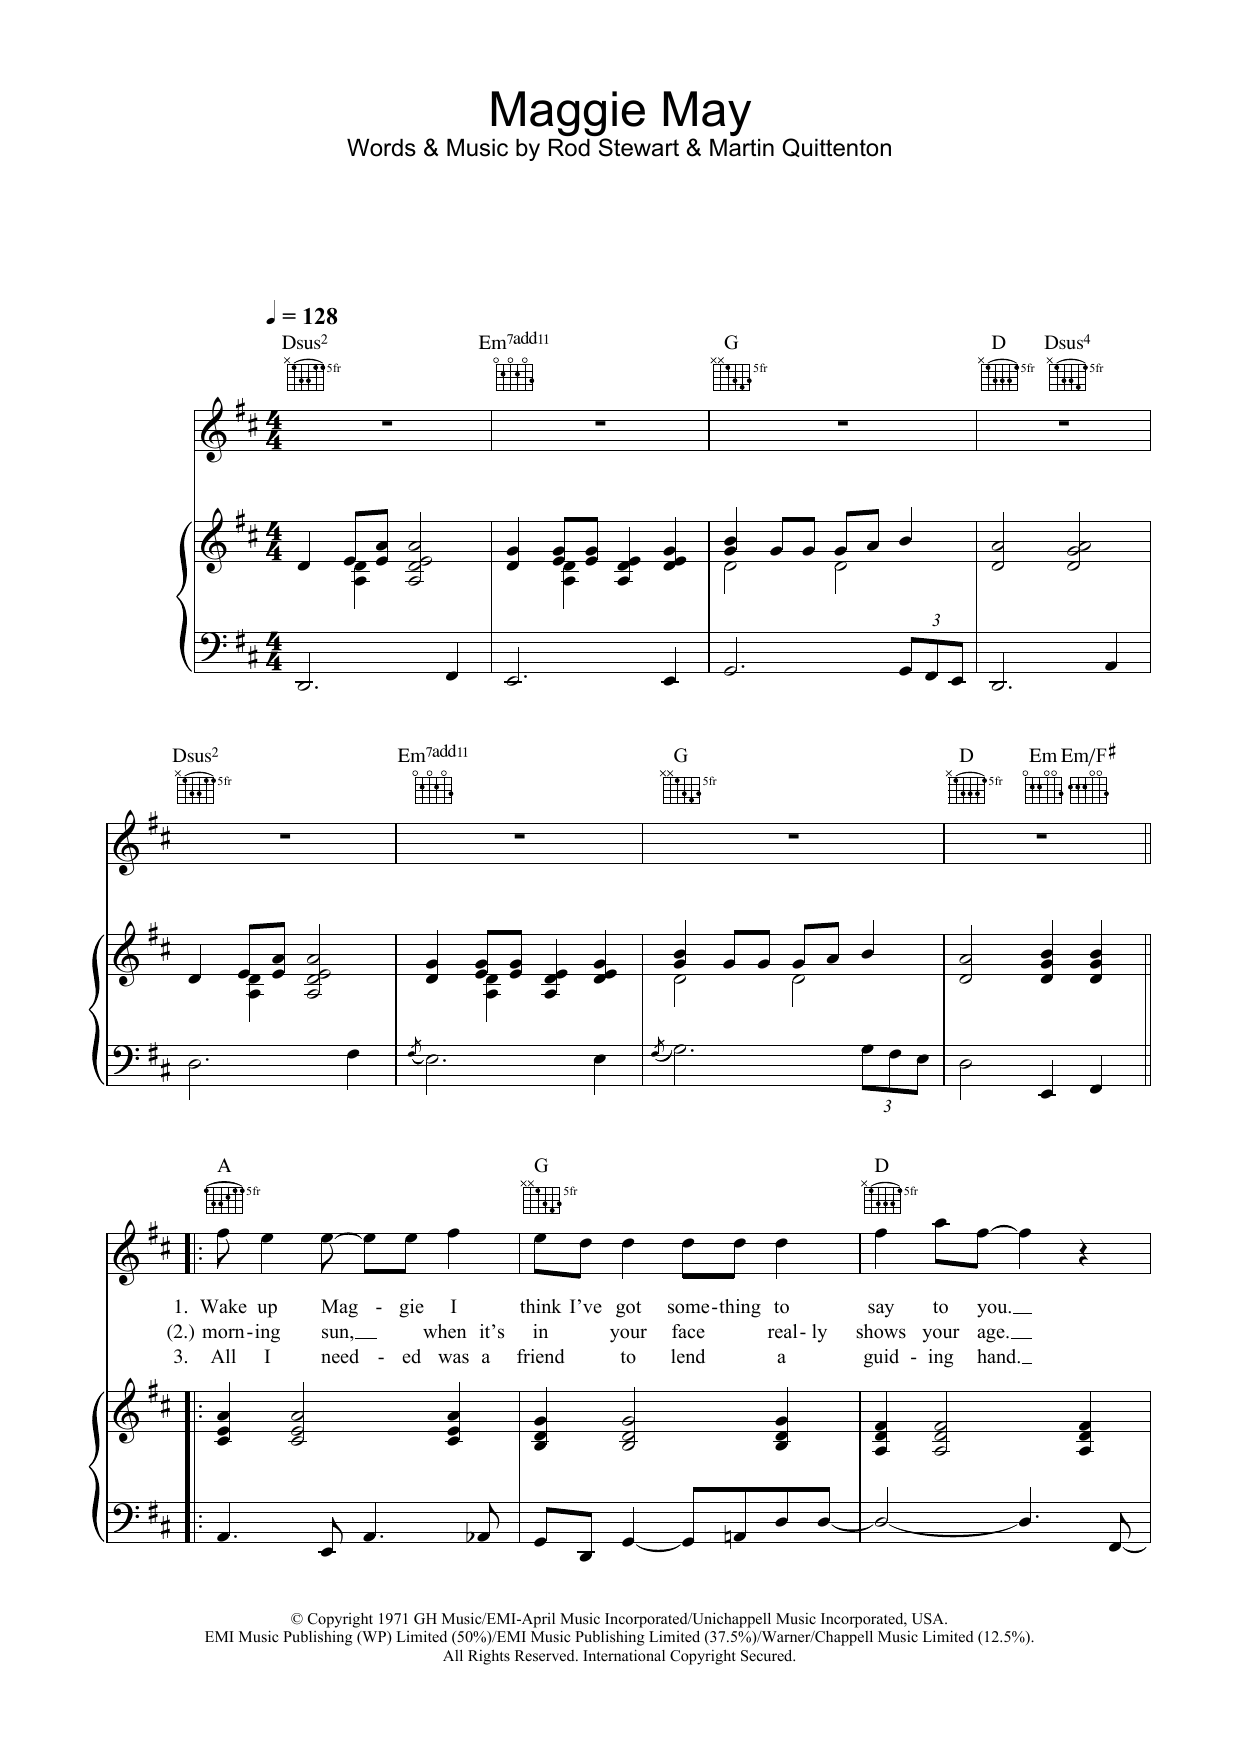 Maggie May : Sheet Music Direct